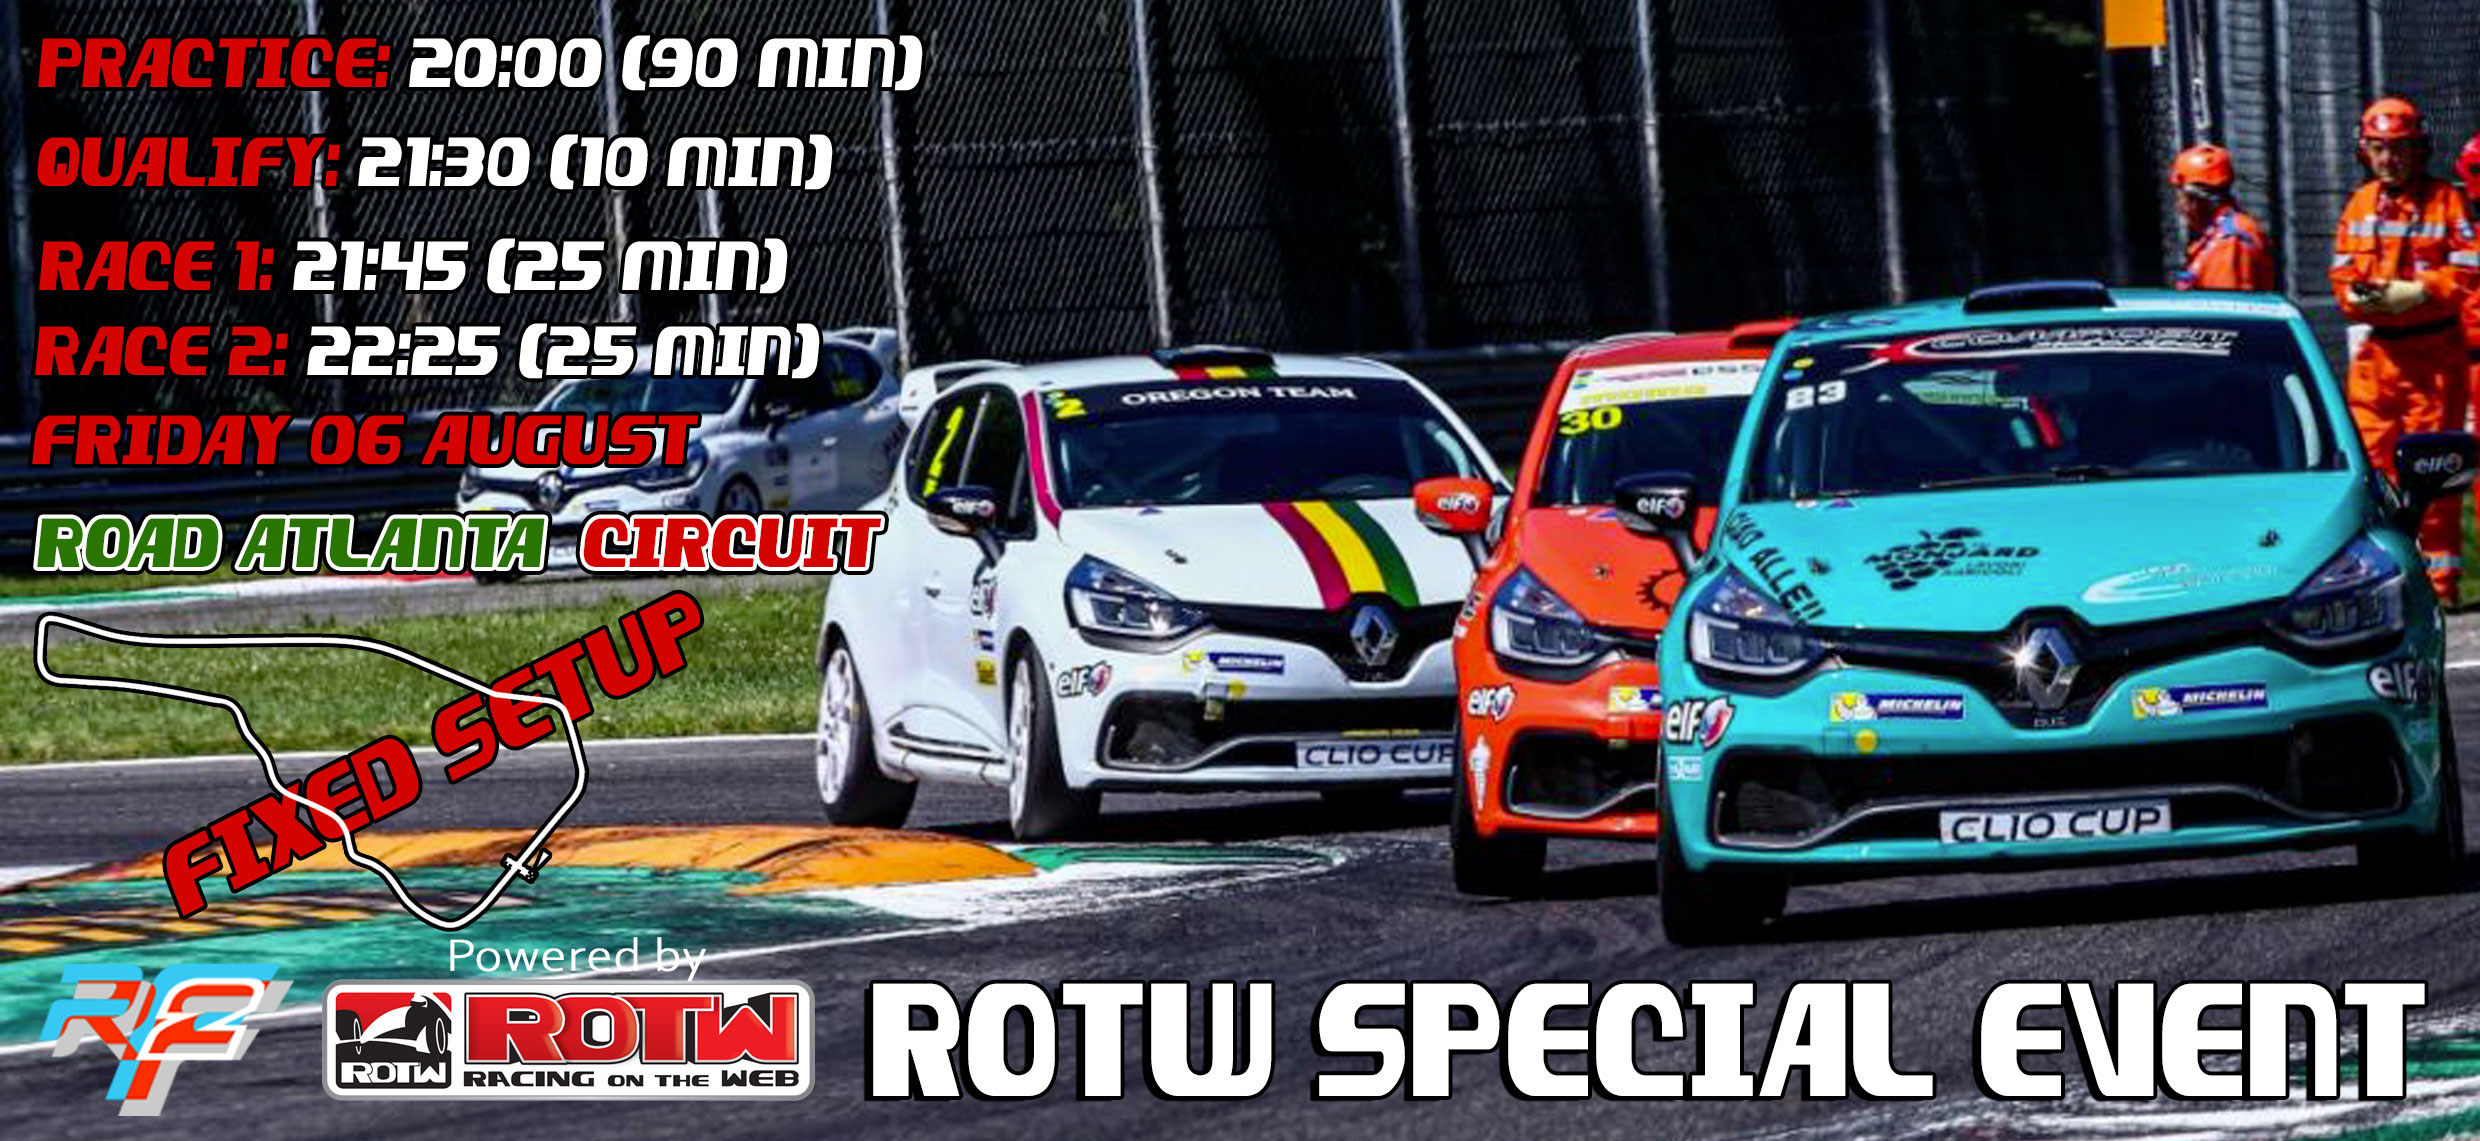 SEcliocup.jpg